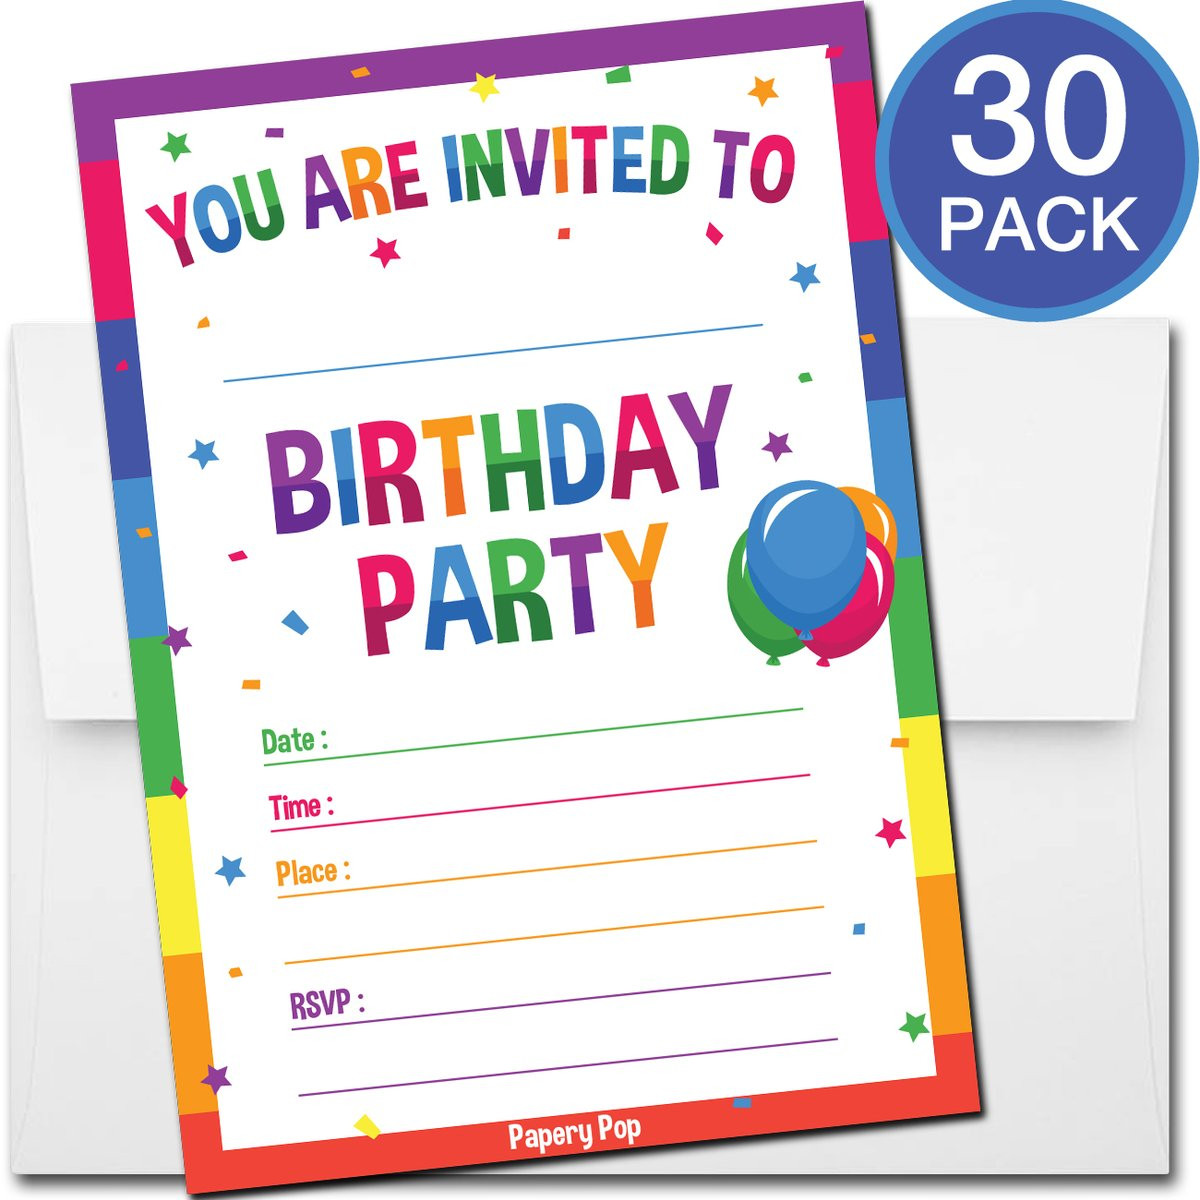 Toddler Birthday Invitations  30 Colorful Rainbow Birthday Invitations with Envelopes